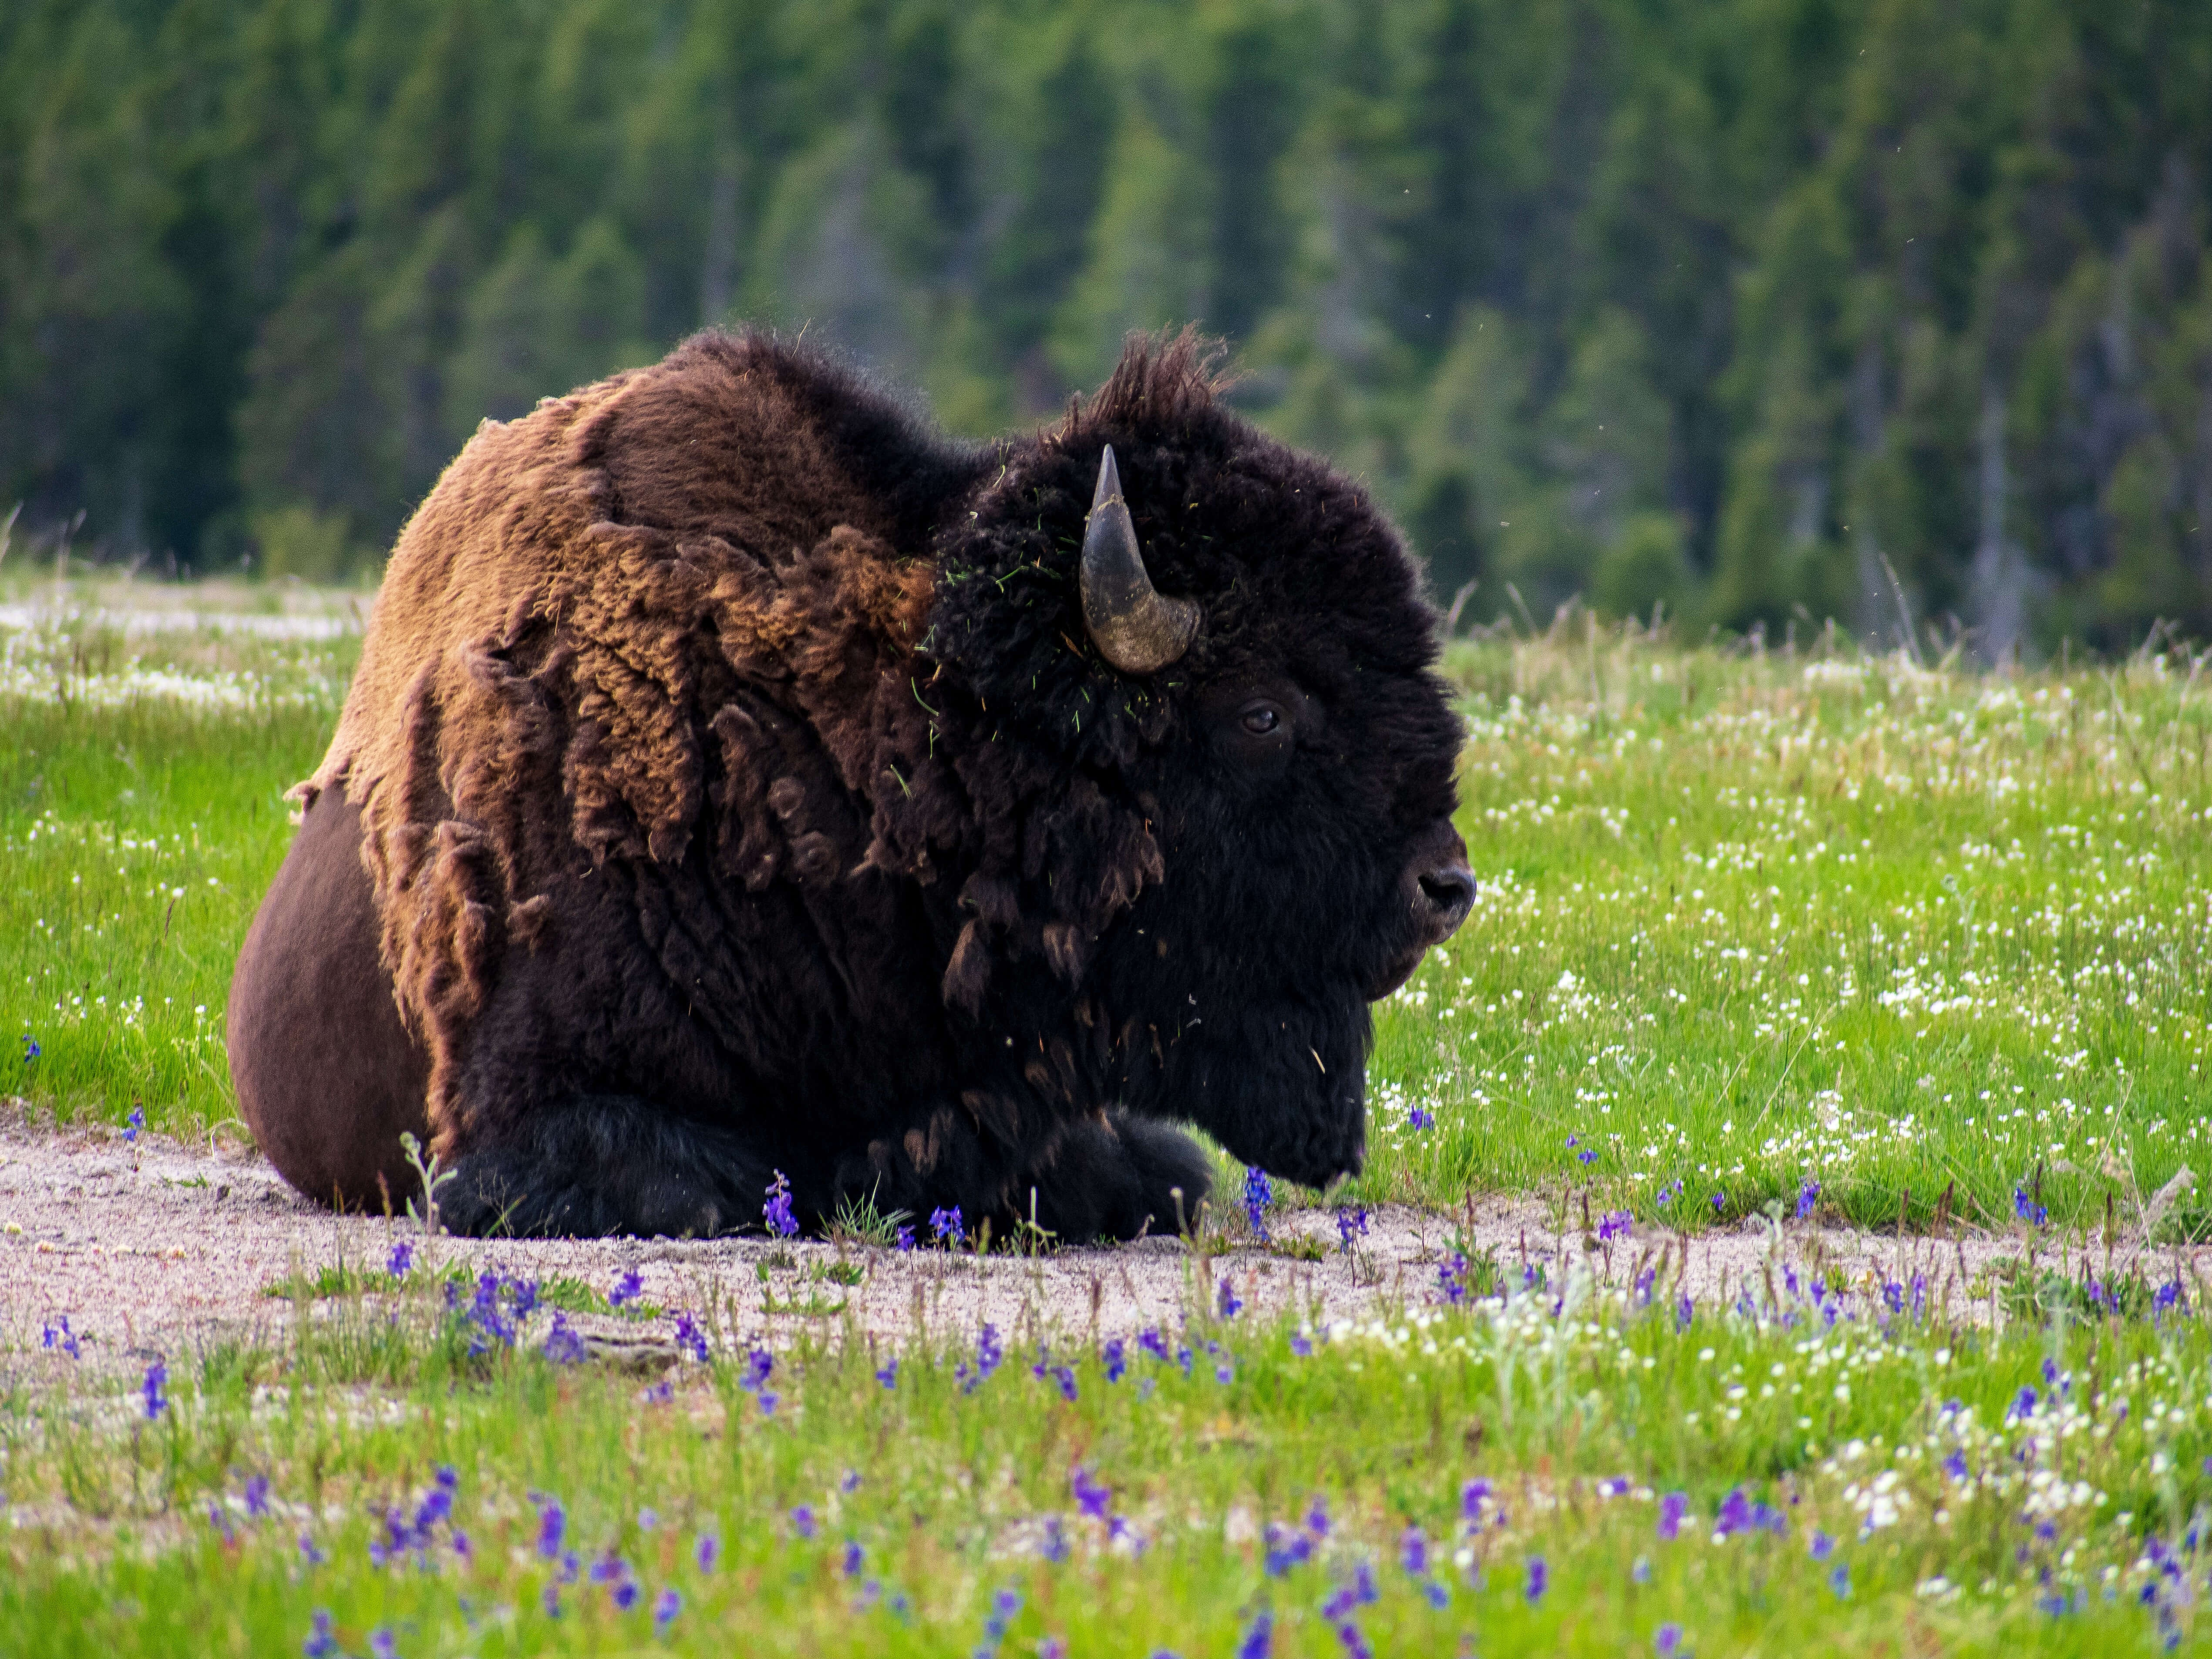 Bison sitting in grassy field Yellowstone